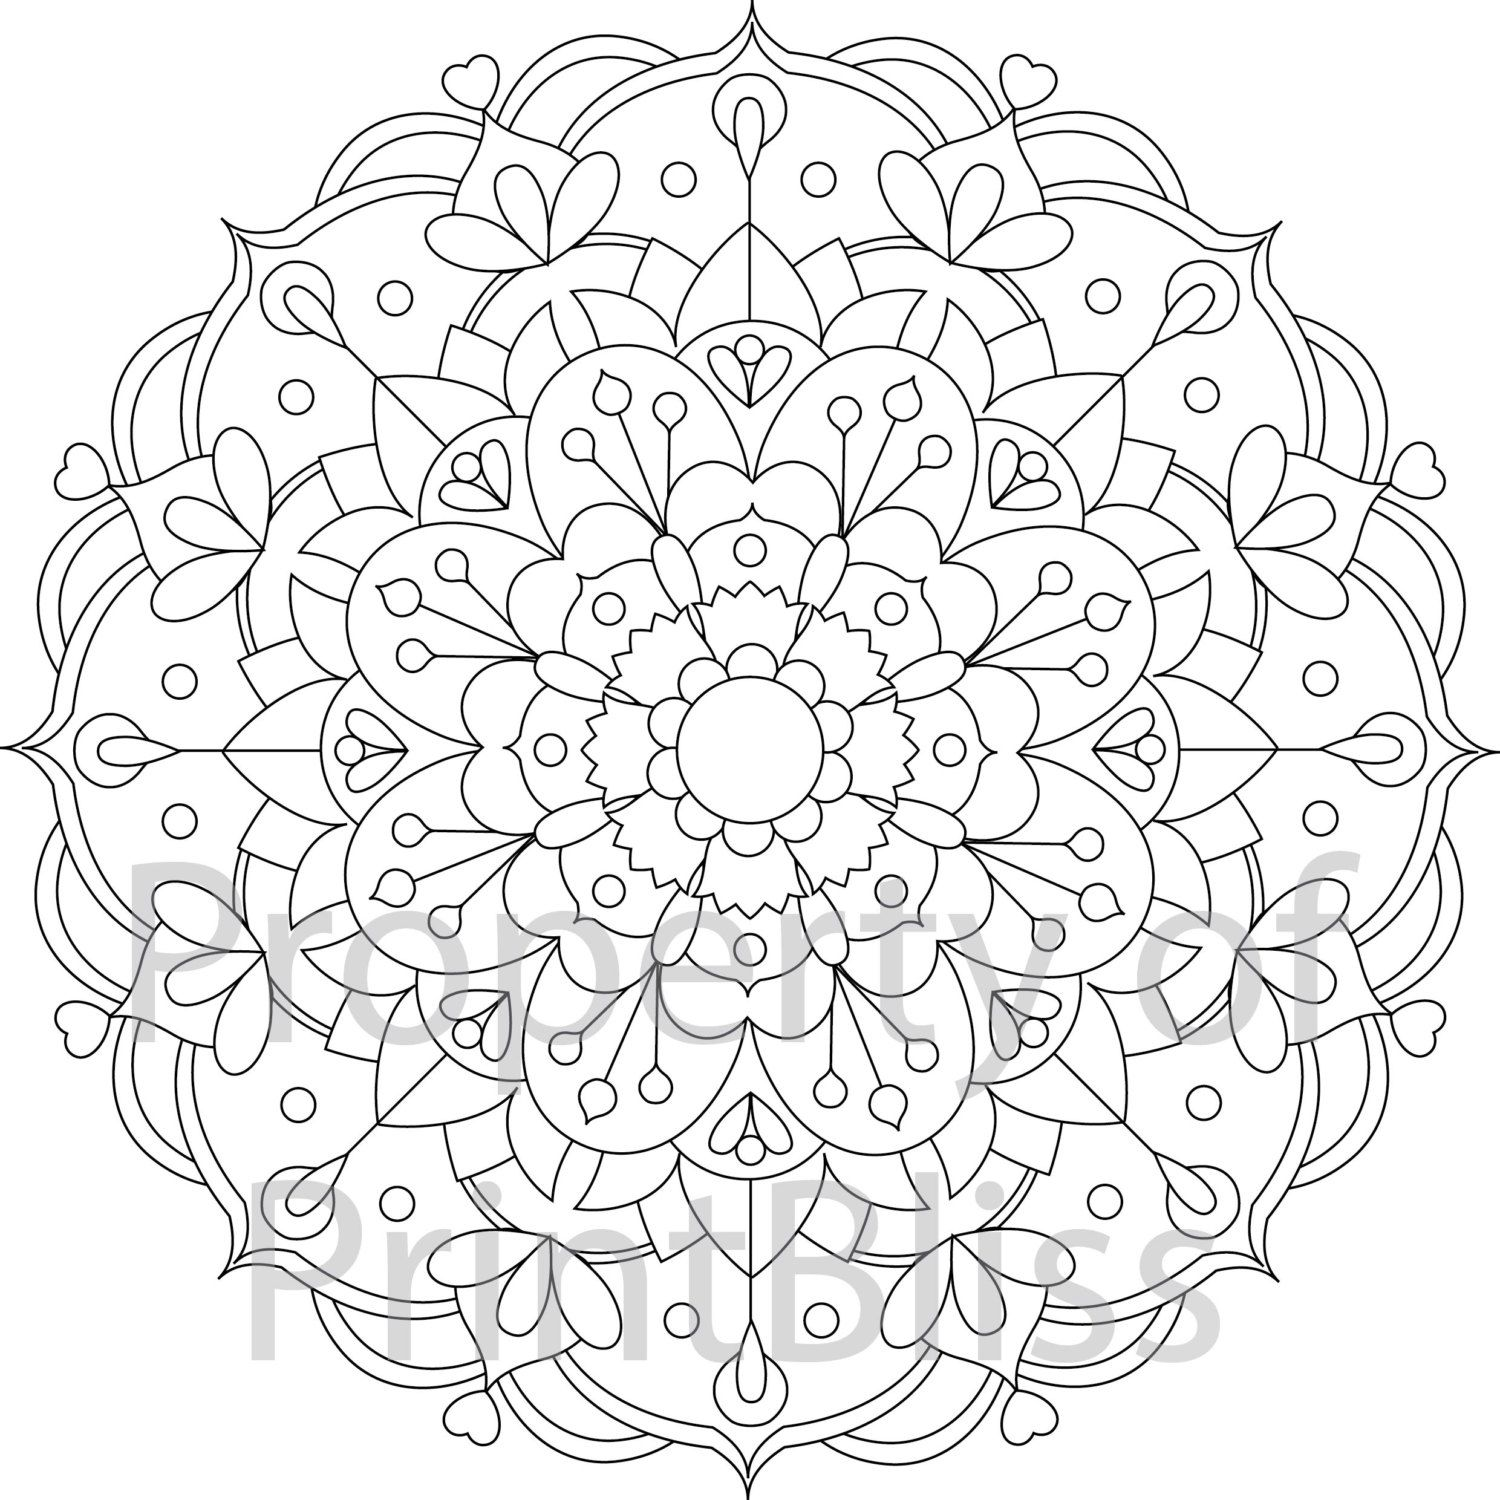 23 Flower Mandala Printable Coloring Page Etsy In 2020 Mandala Coloring Pages Flower Coloring Pages Mandala Printable